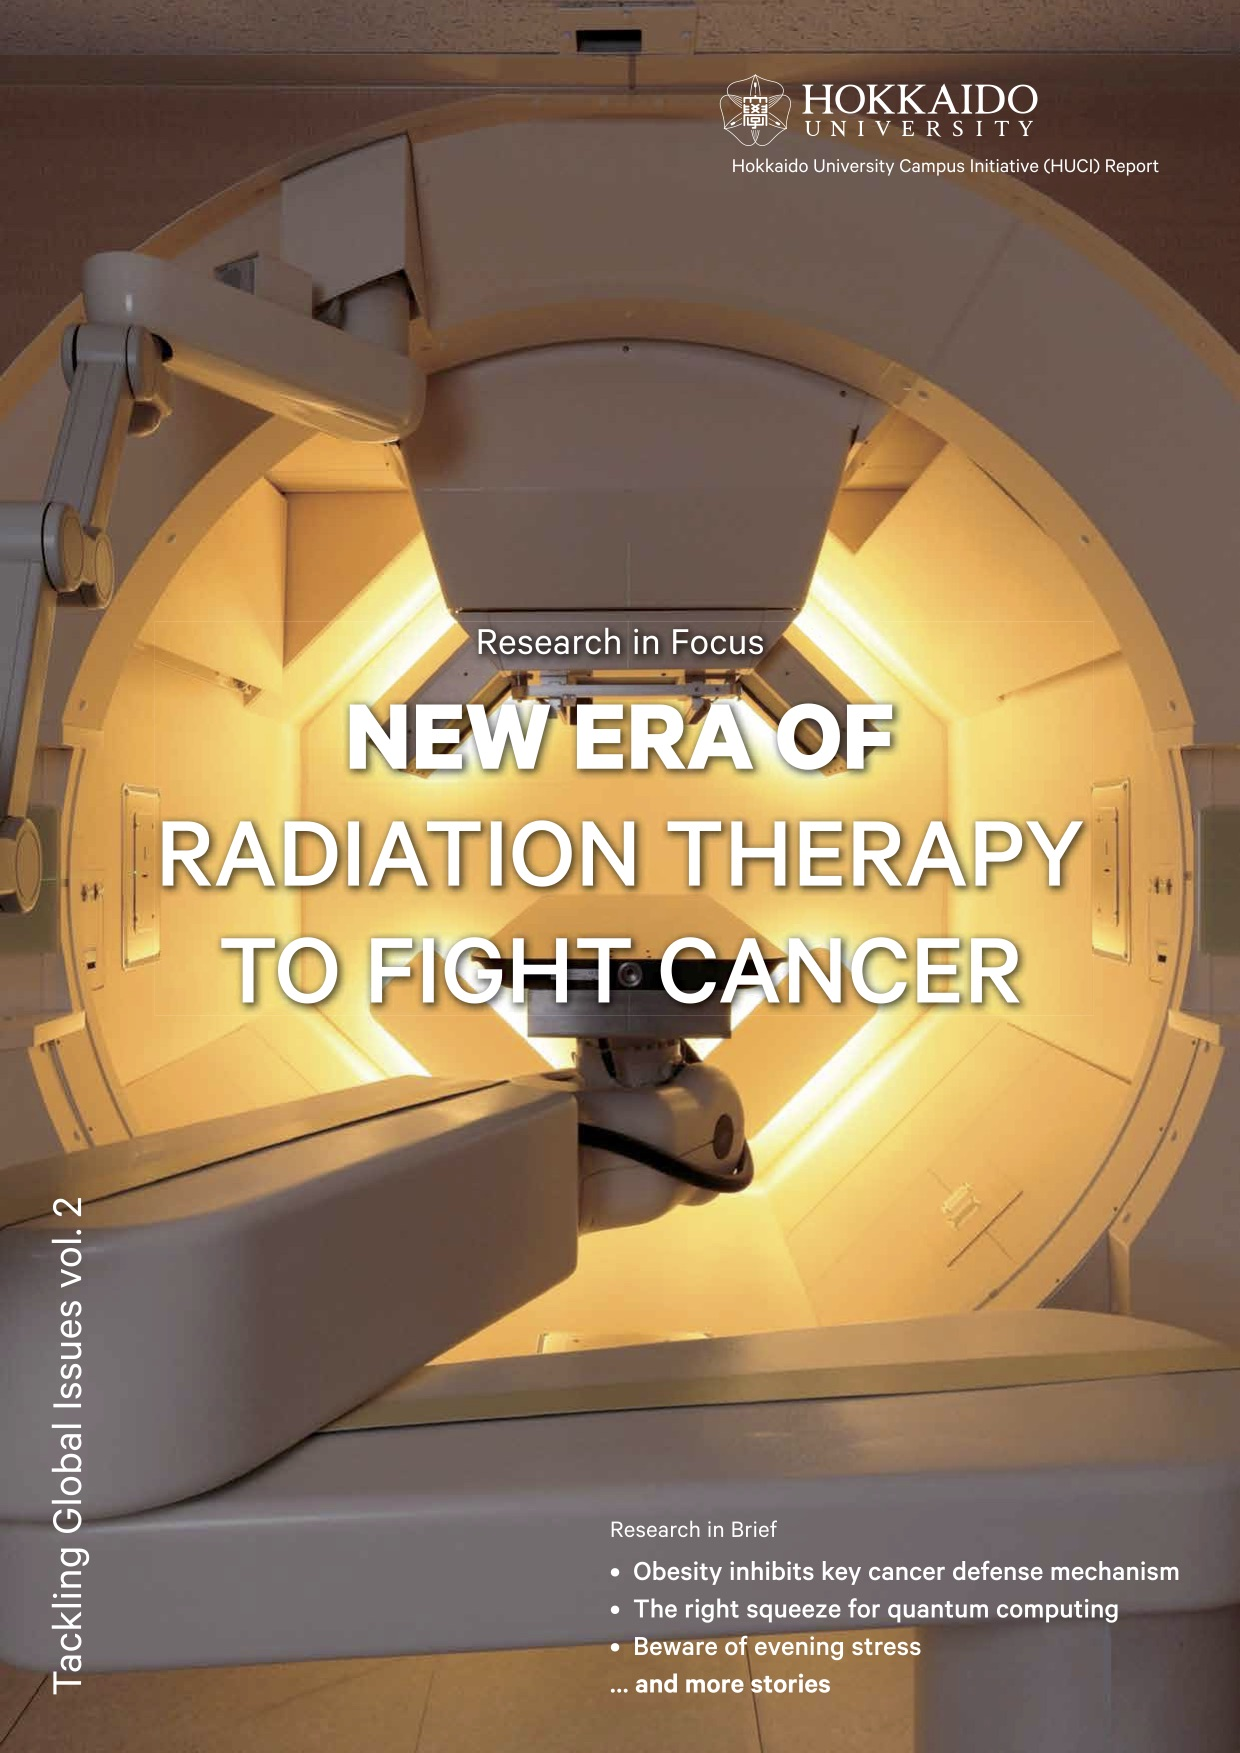 New Era of Radiation Therapy to Fight Cancer